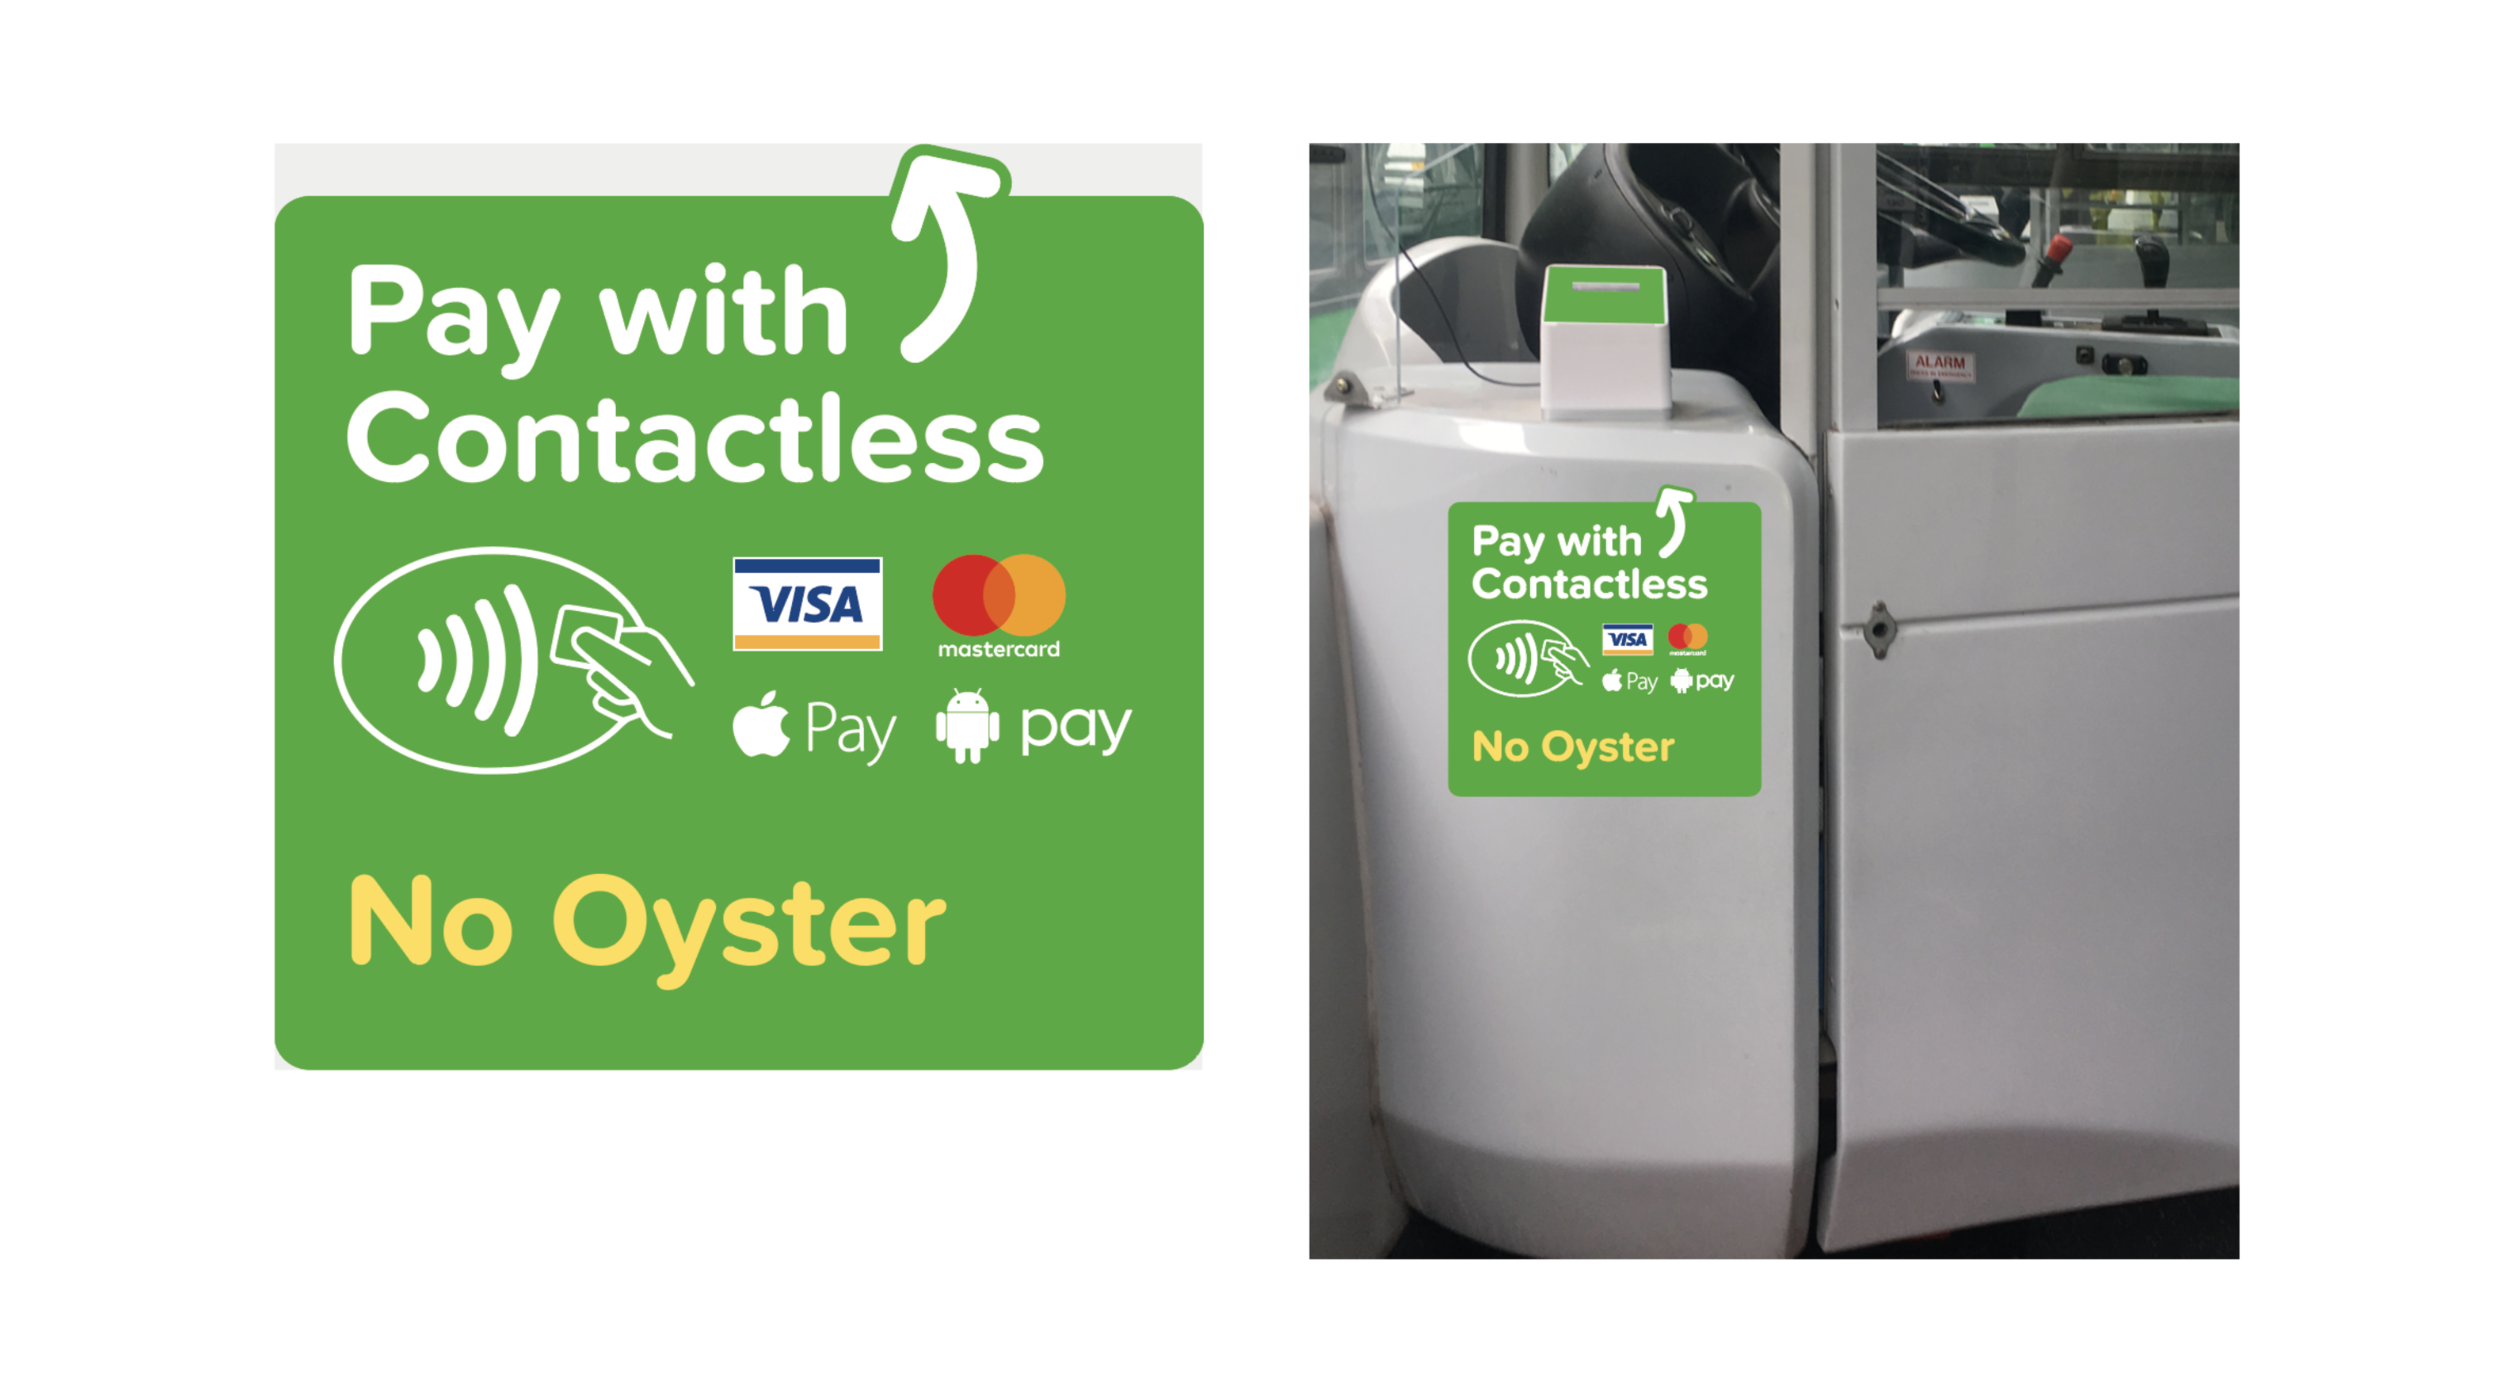 Payment UX is crucial in transit, along with payment wayfinding